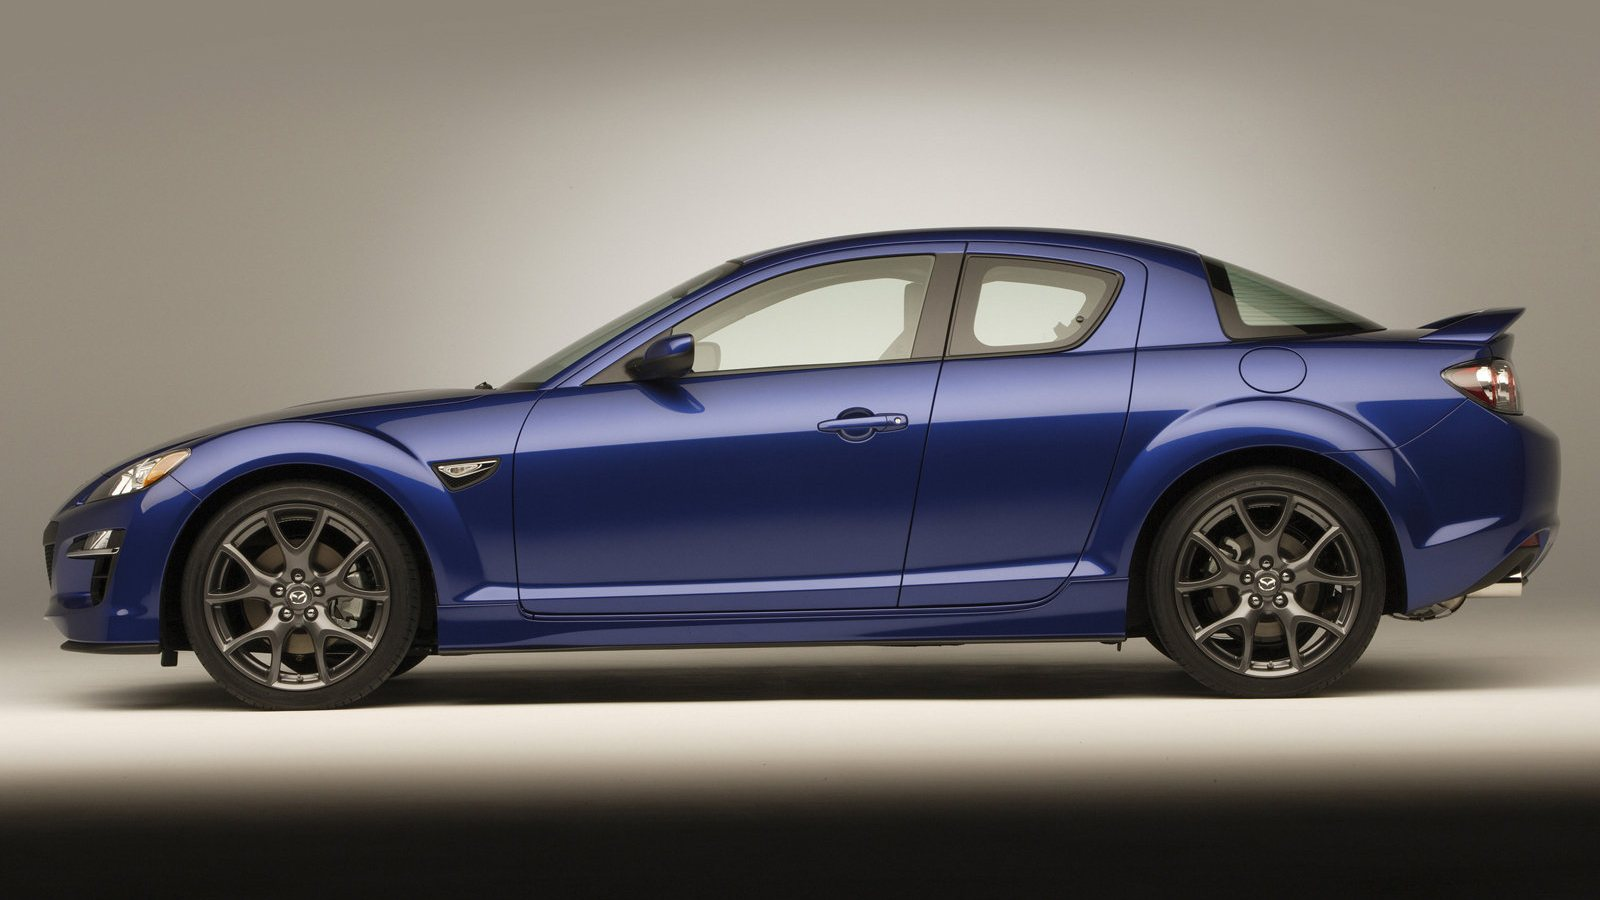 Mazda RX-8 I Restyling 2008 - 2012 Coupe #3